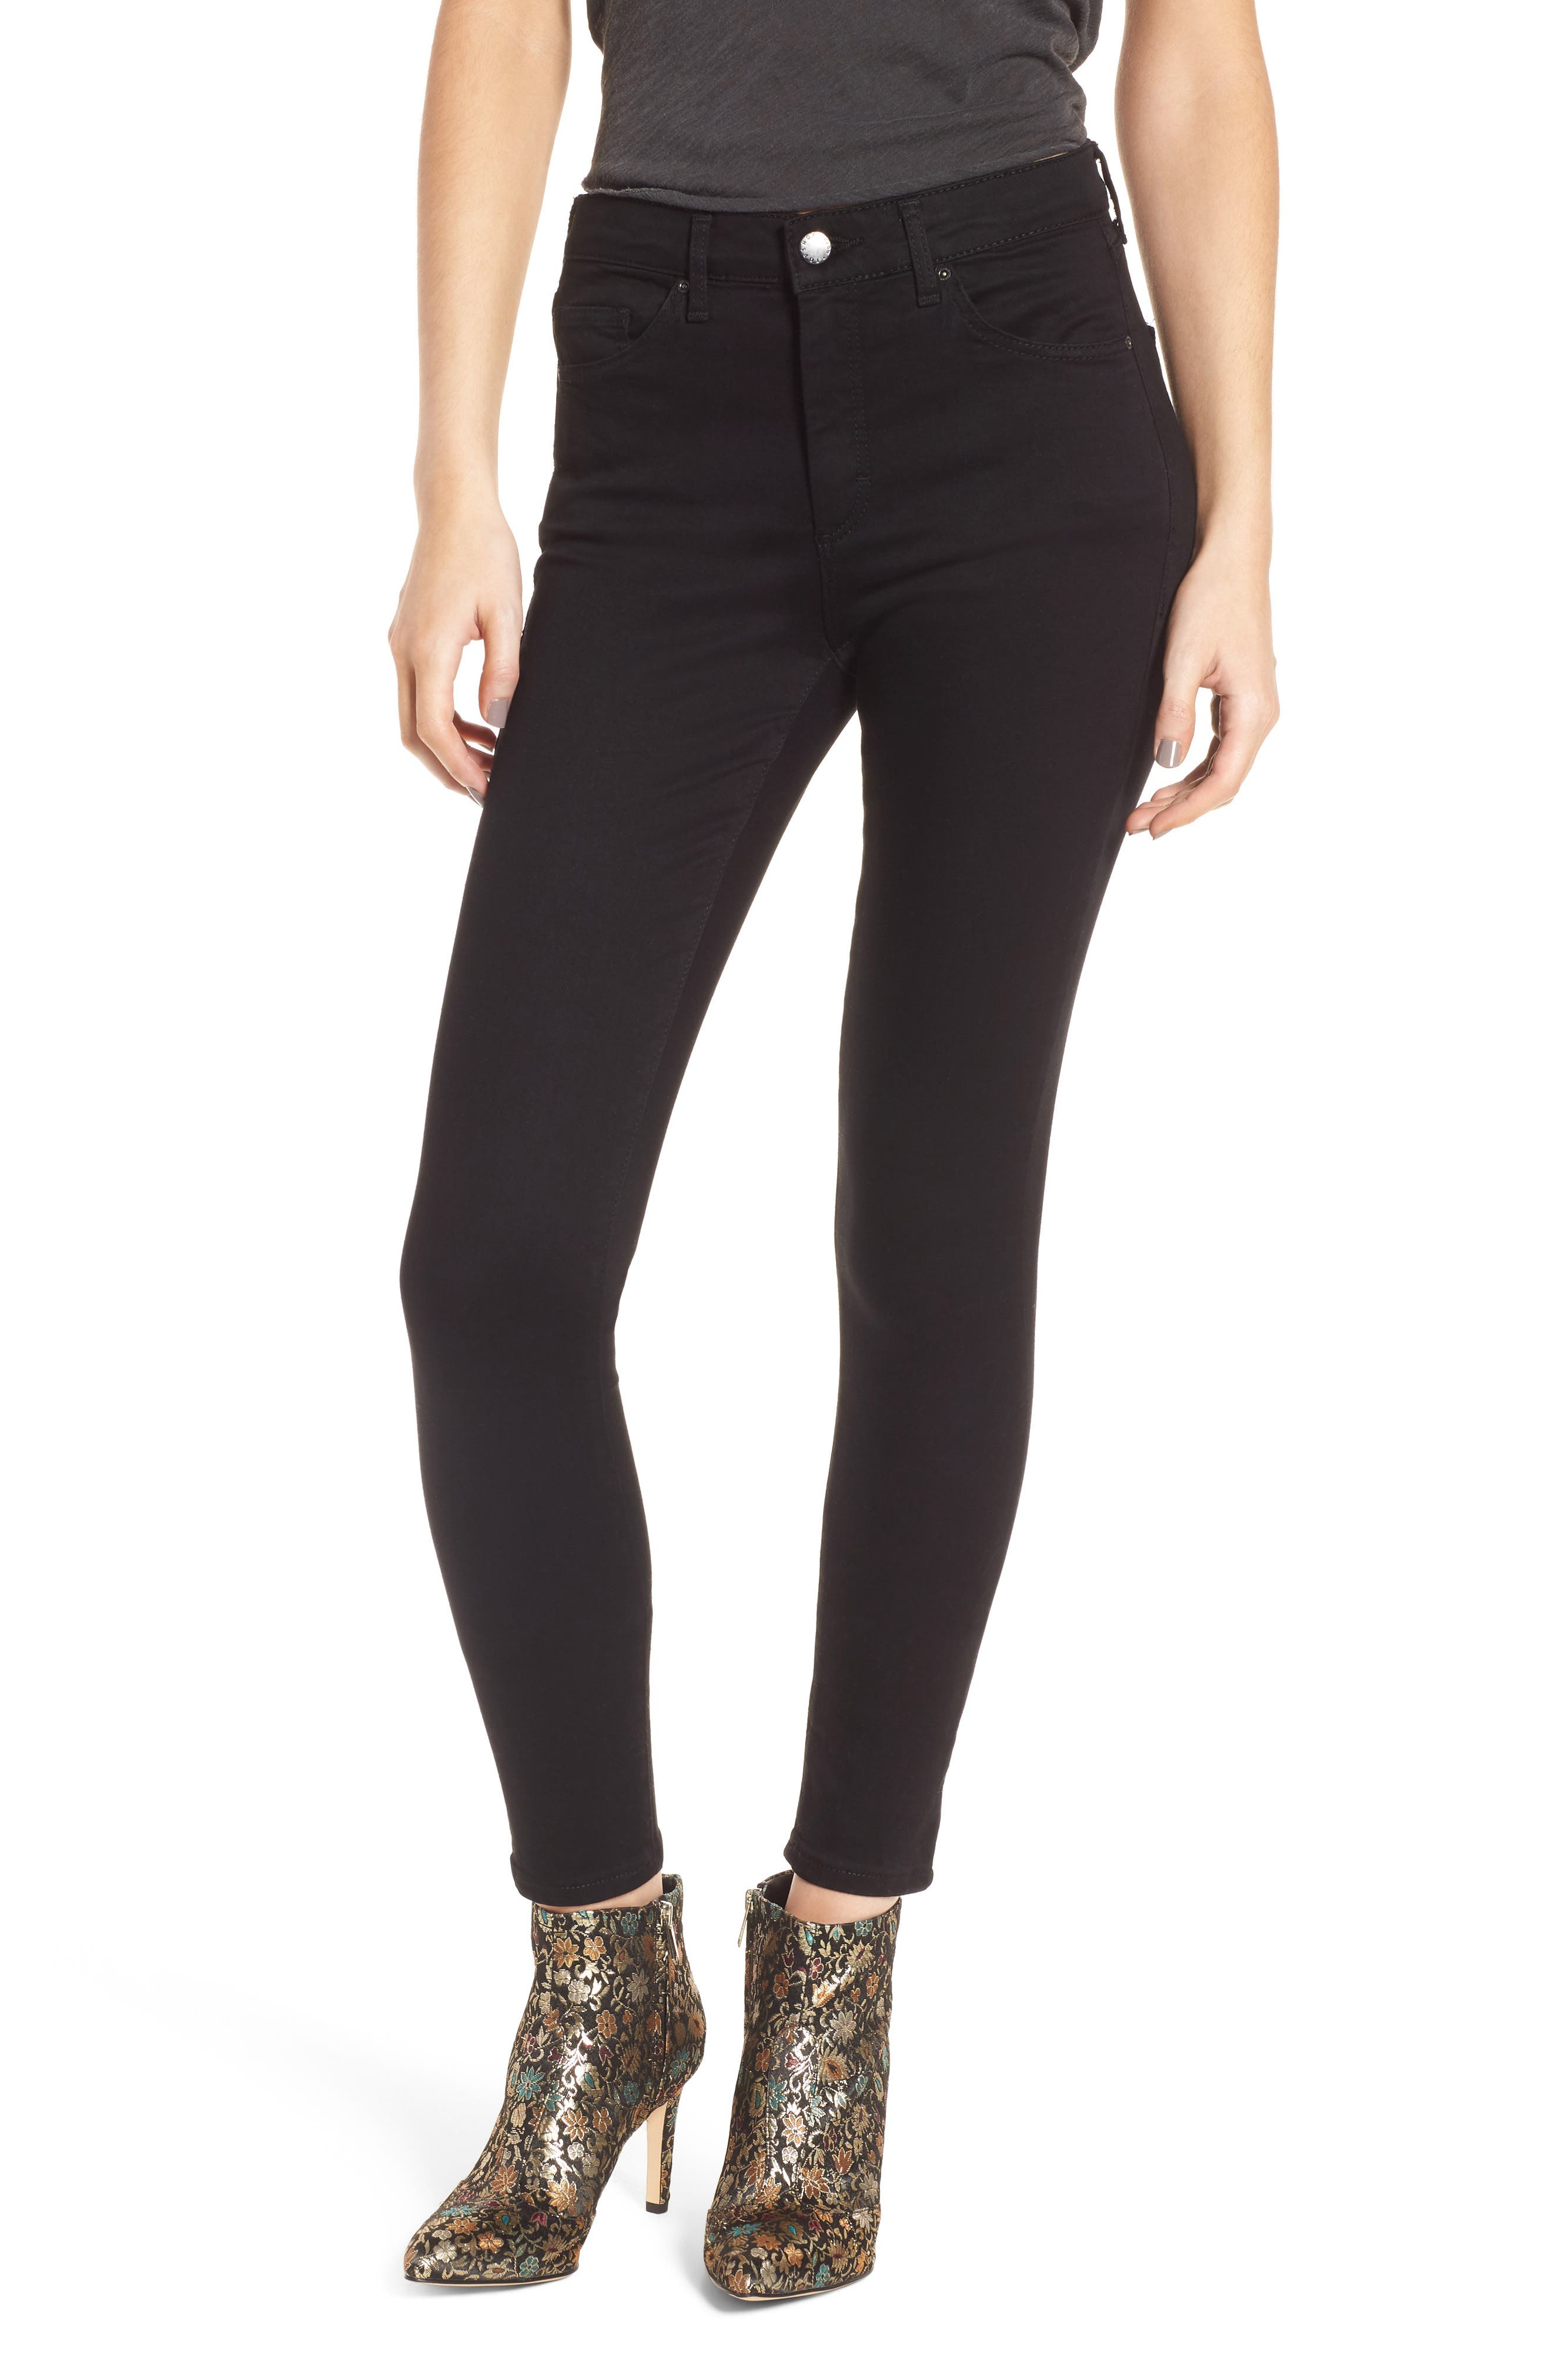 Leigh Ankle Skinny Jeans,                         Main,                         color, Black